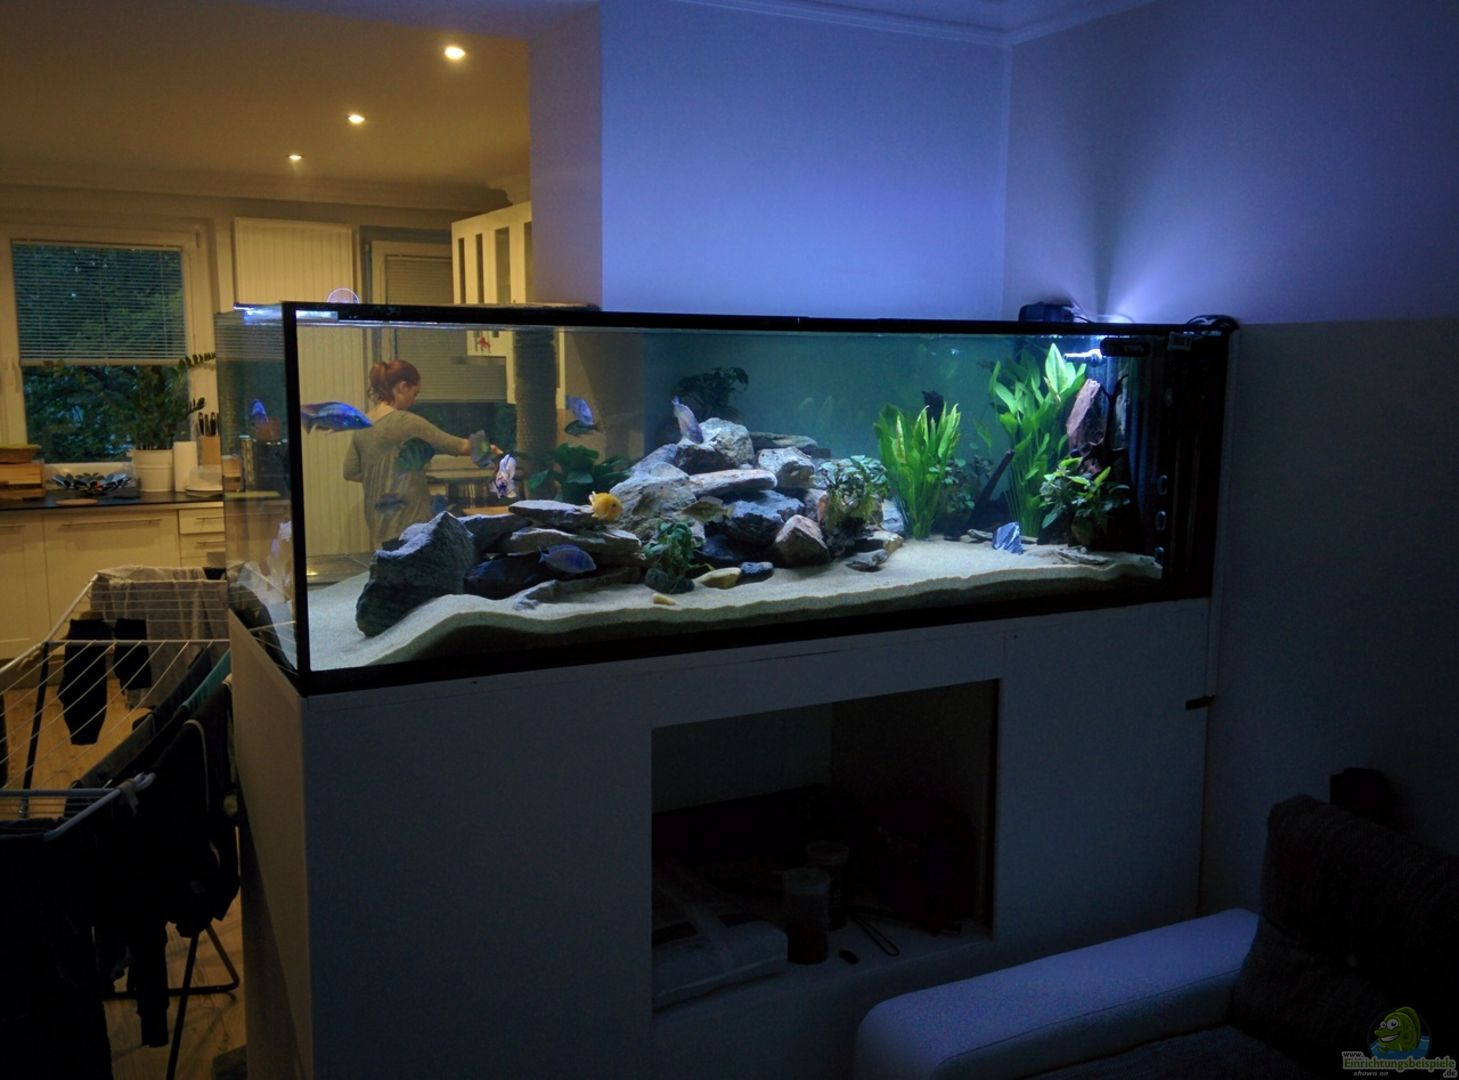 aquarium hauptansicht raumteiler zwischen wohnzimmer k che aus malawitraum von matthias puffer. Black Bedroom Furniture Sets. Home Design Ideas